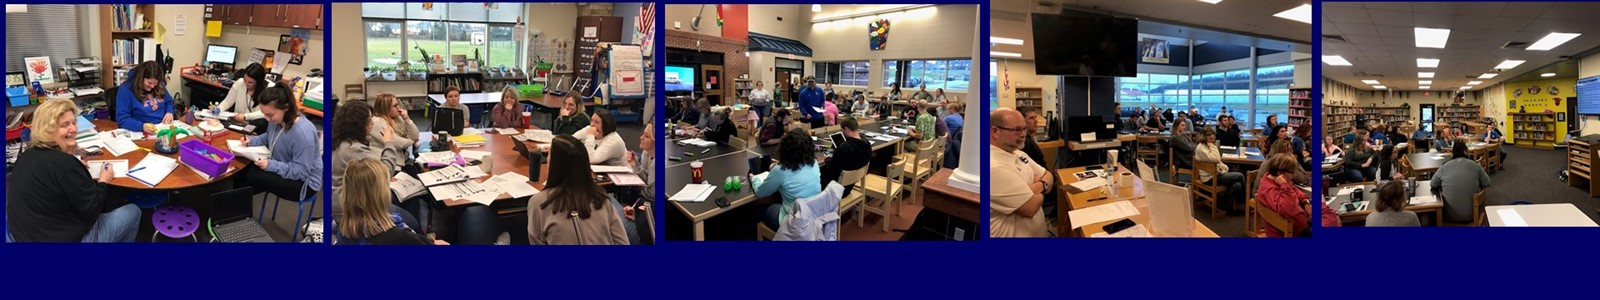 SCPS Teachers/Staff Preparing for Students and Second Semester!